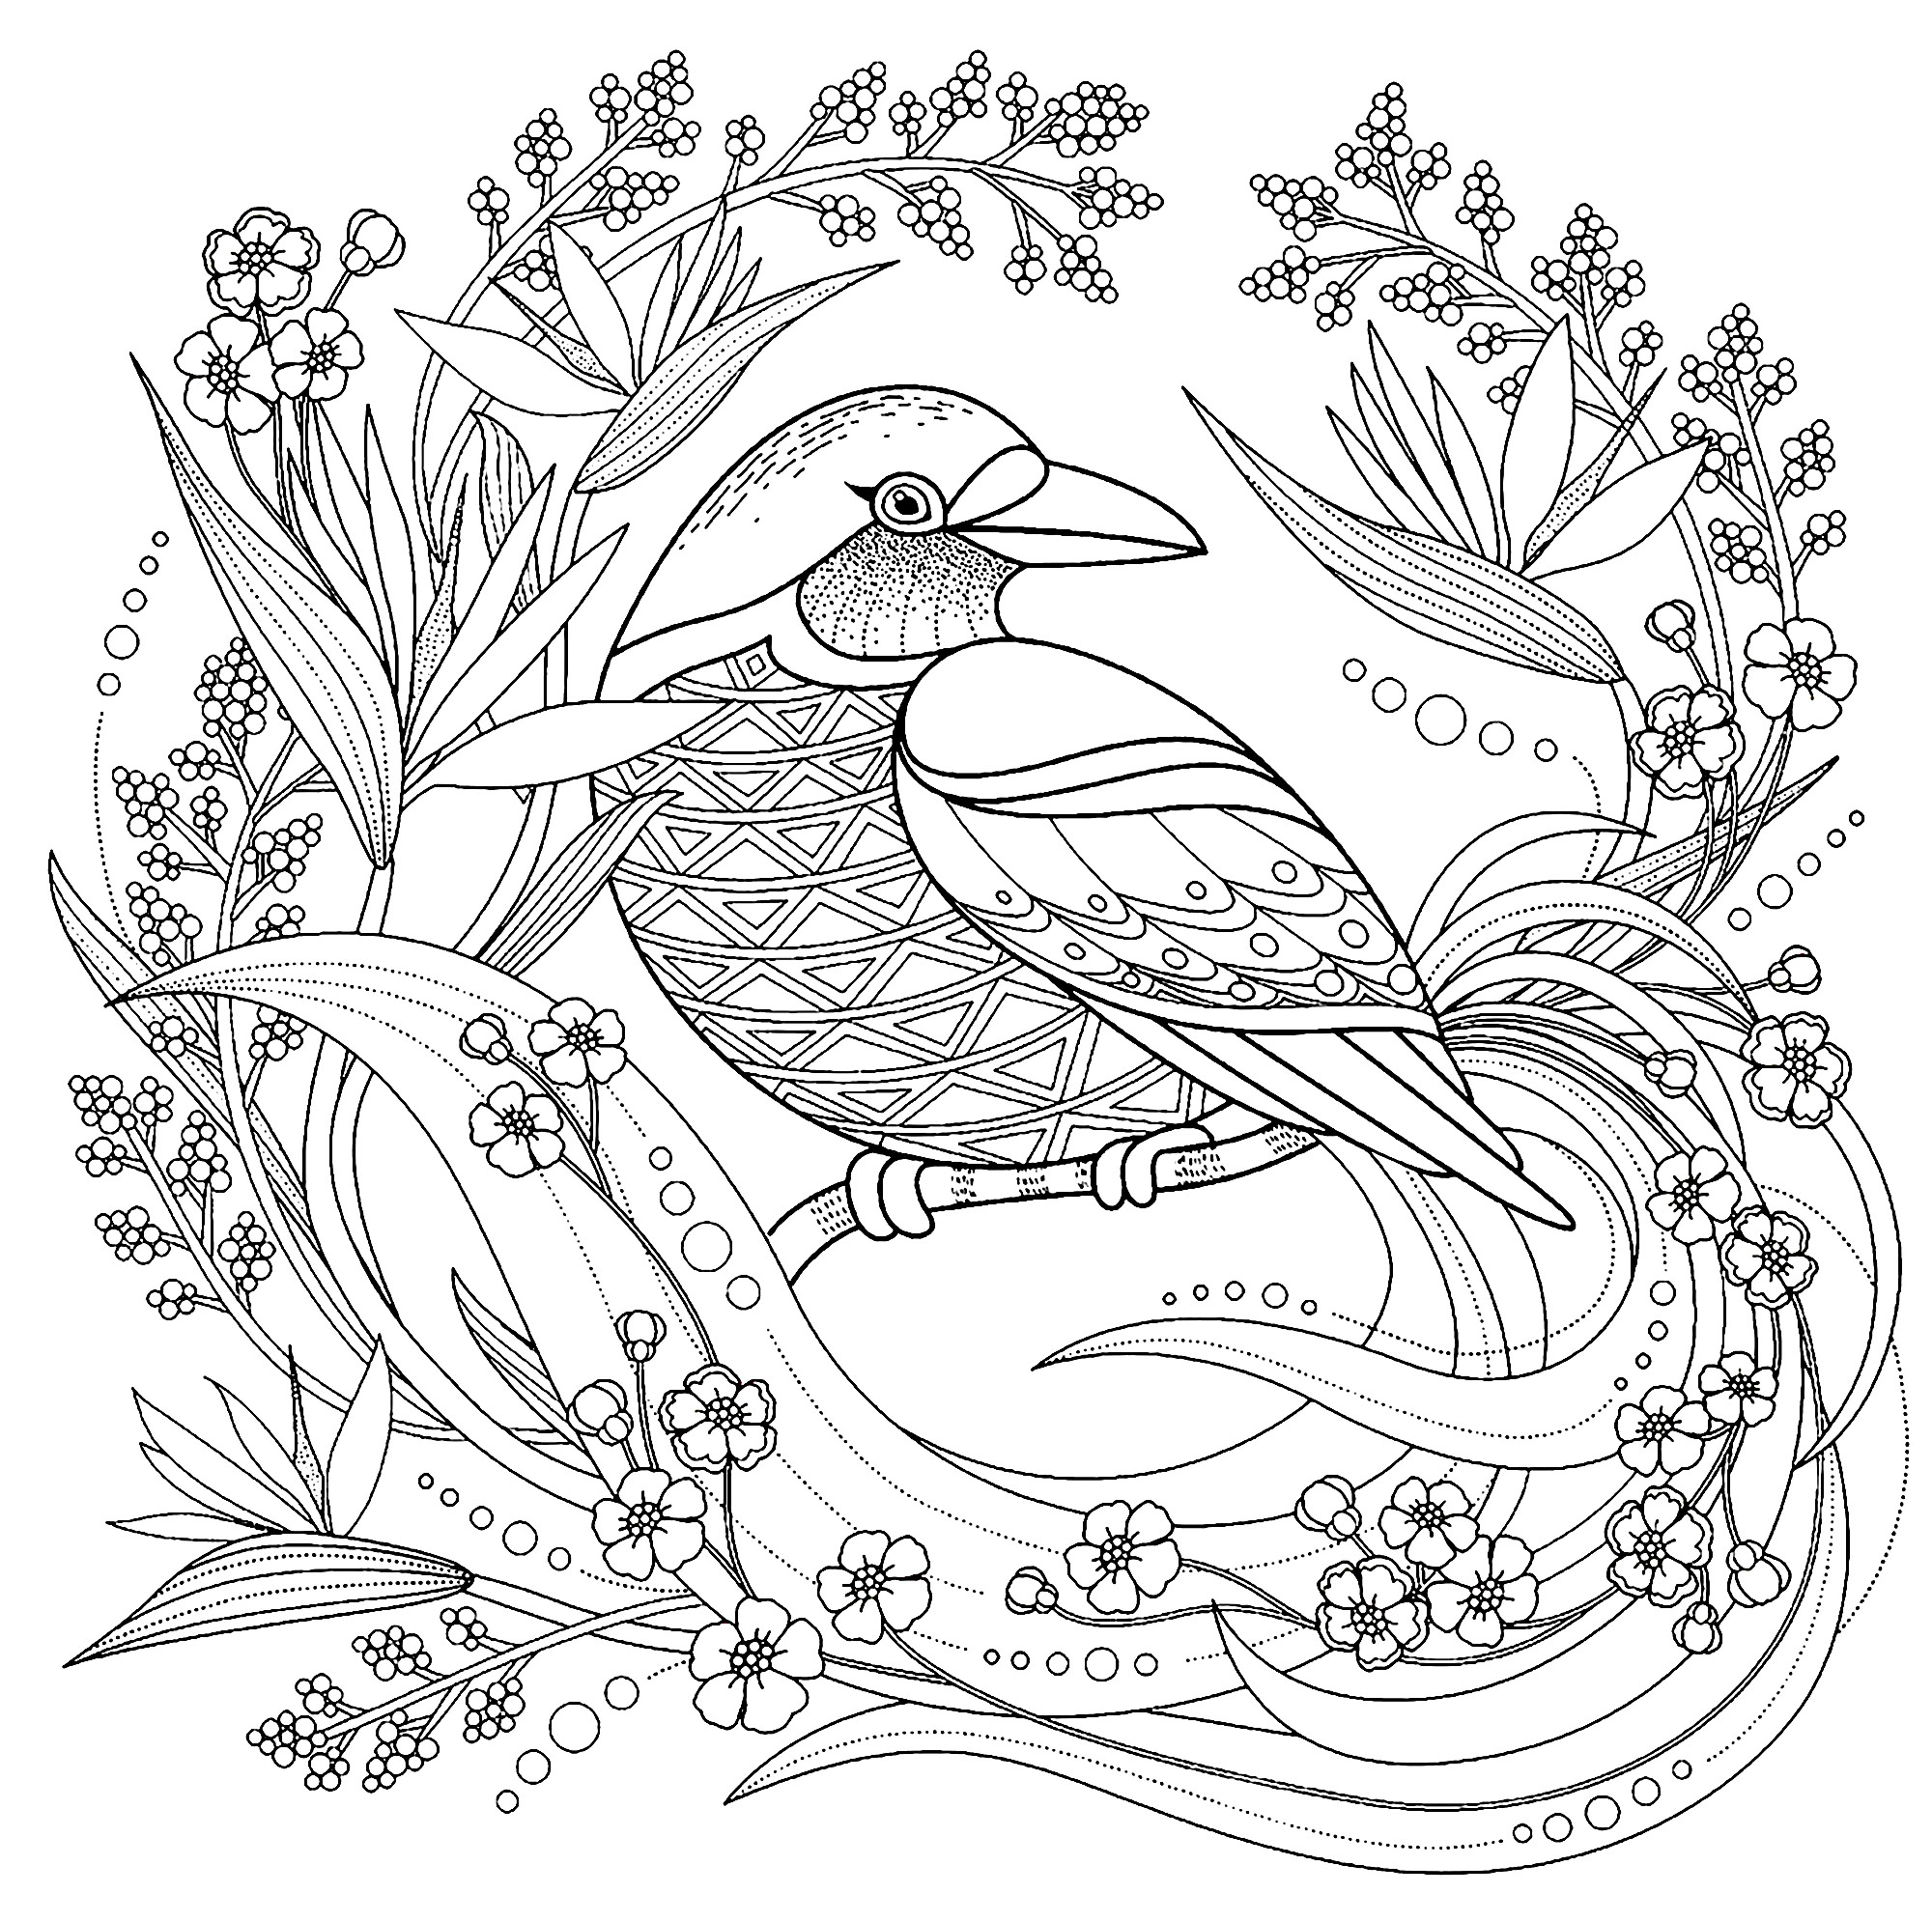 bird colouring pictures 17 best images about birds on pinterest coloring pages bird pictures colouring